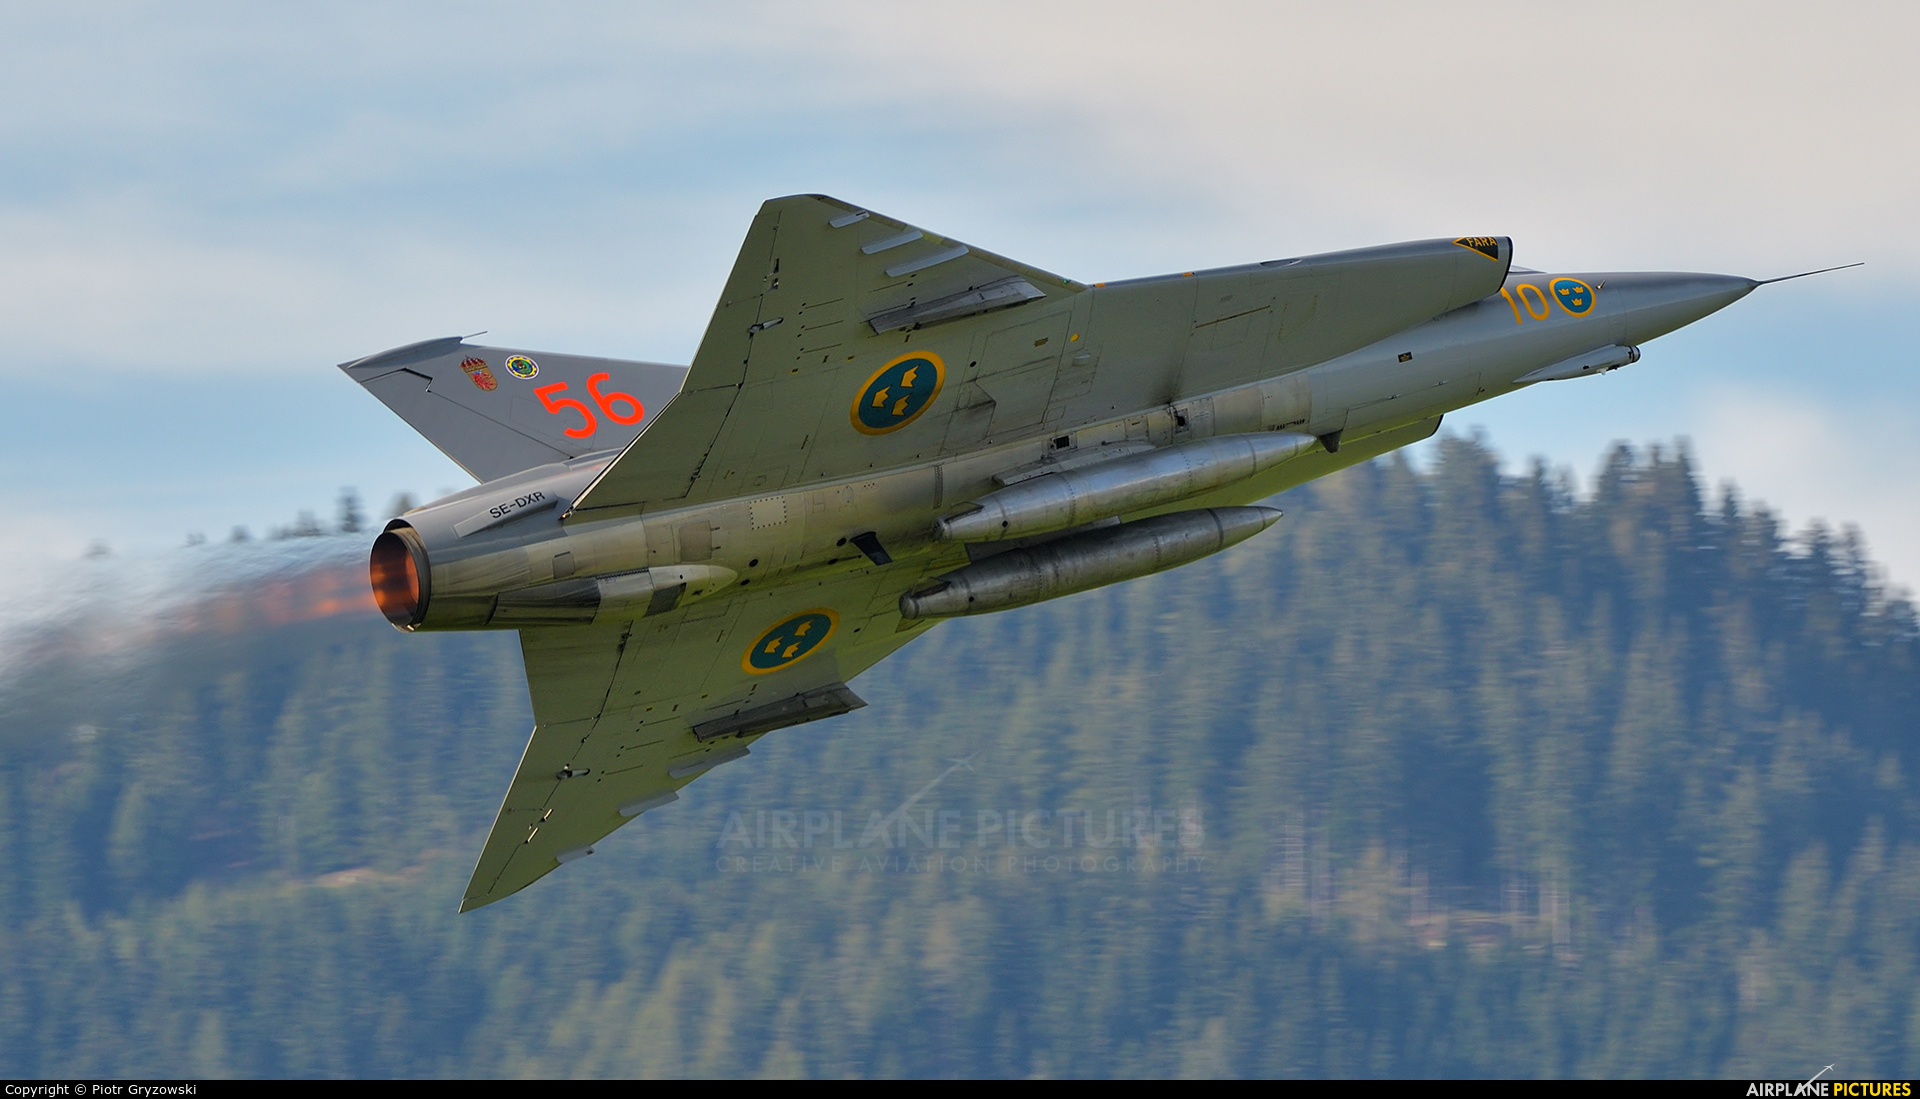 Swedish Air Force Historic Flight SE-DXR aircraft at Zeltweg